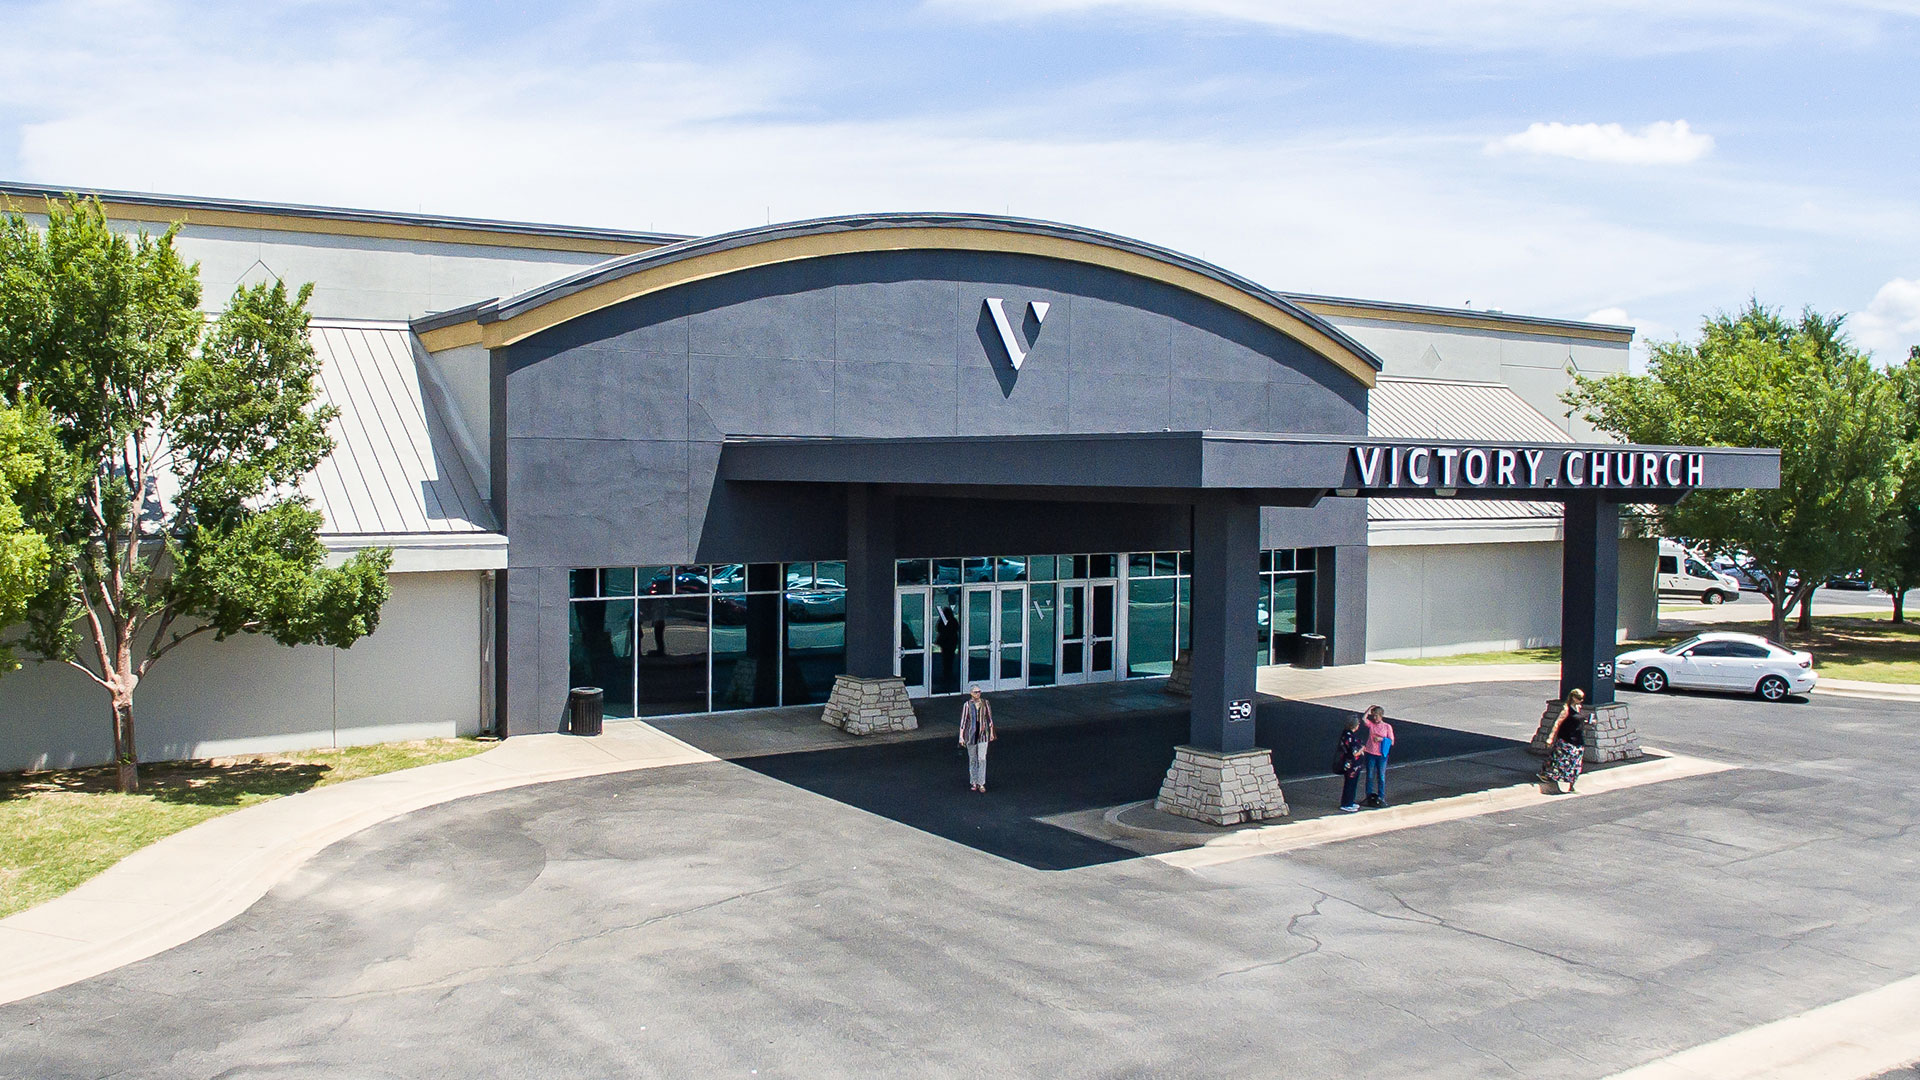 Oklahoma City Victory Church